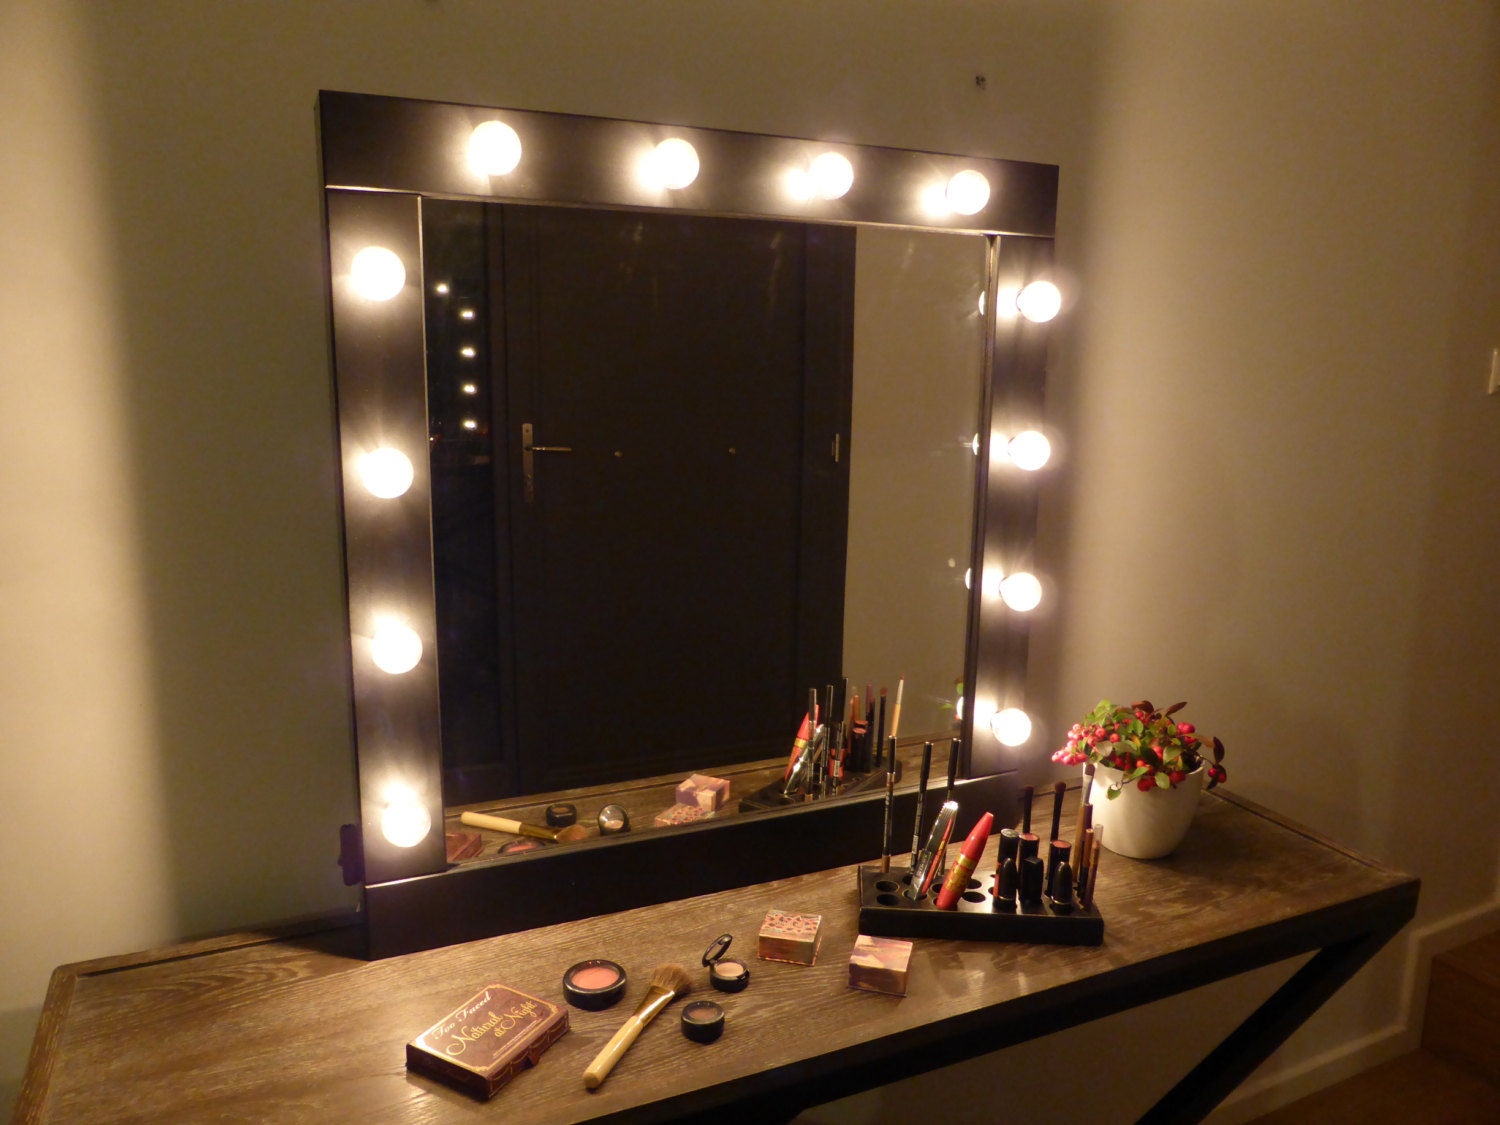 Light up vanity set home decor renovation ideas light up vanity set hollywood vanity mirror with lights glamour girl broadway mirrors light up aloadofball Choice Image